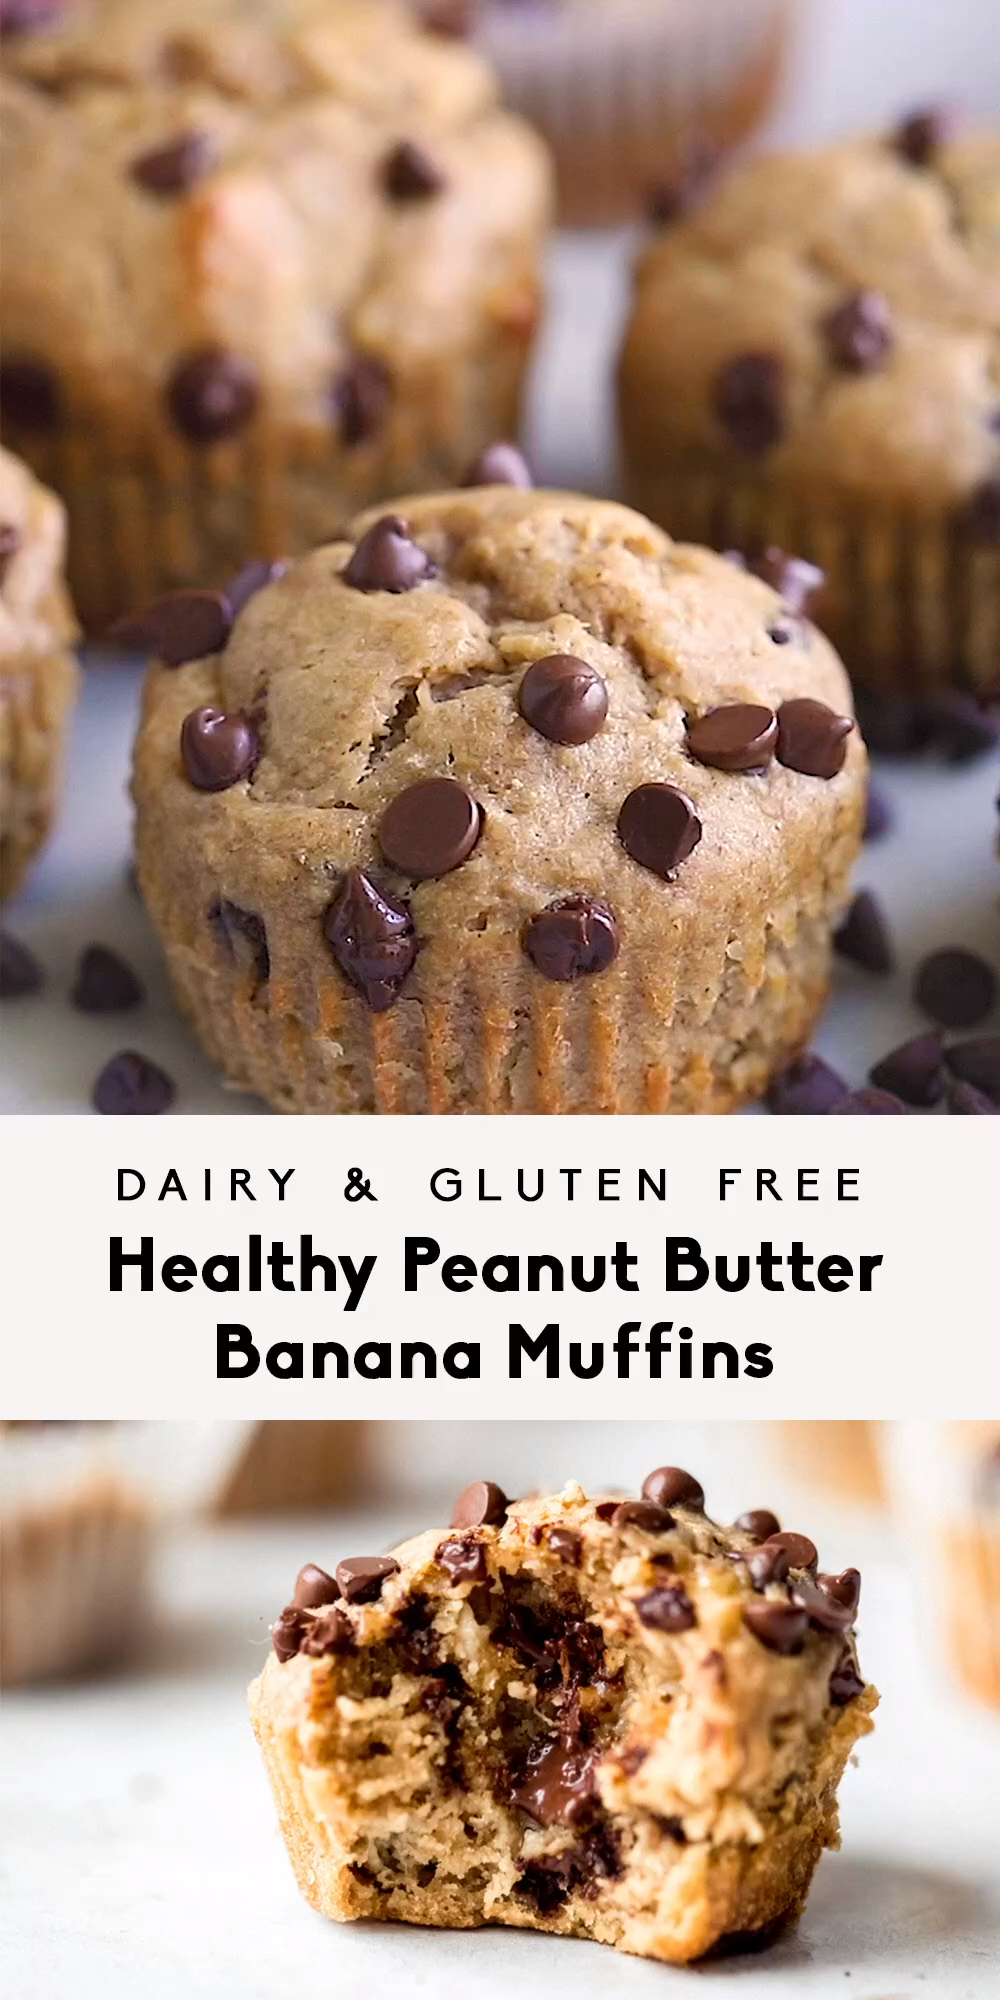 Healthy Peanut Butter Banana Muffins (dairy free +